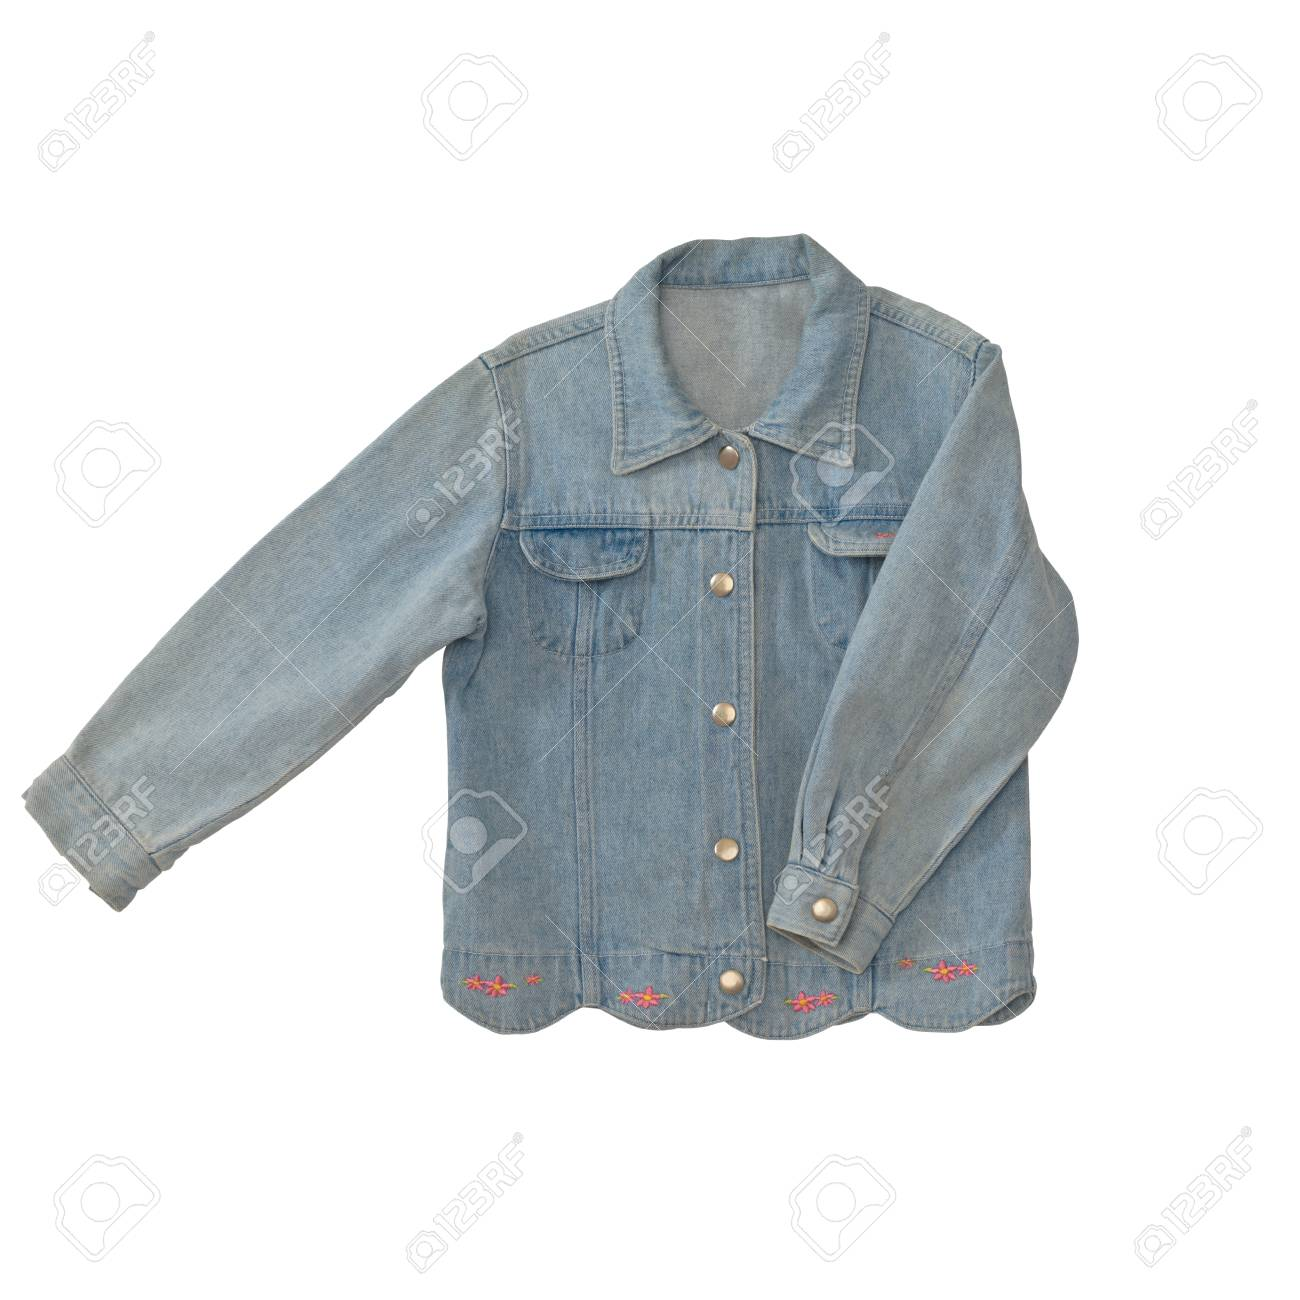 1f37077f6092 Blue Jeans Jacket For Kid Isolated On White Background With Working ...